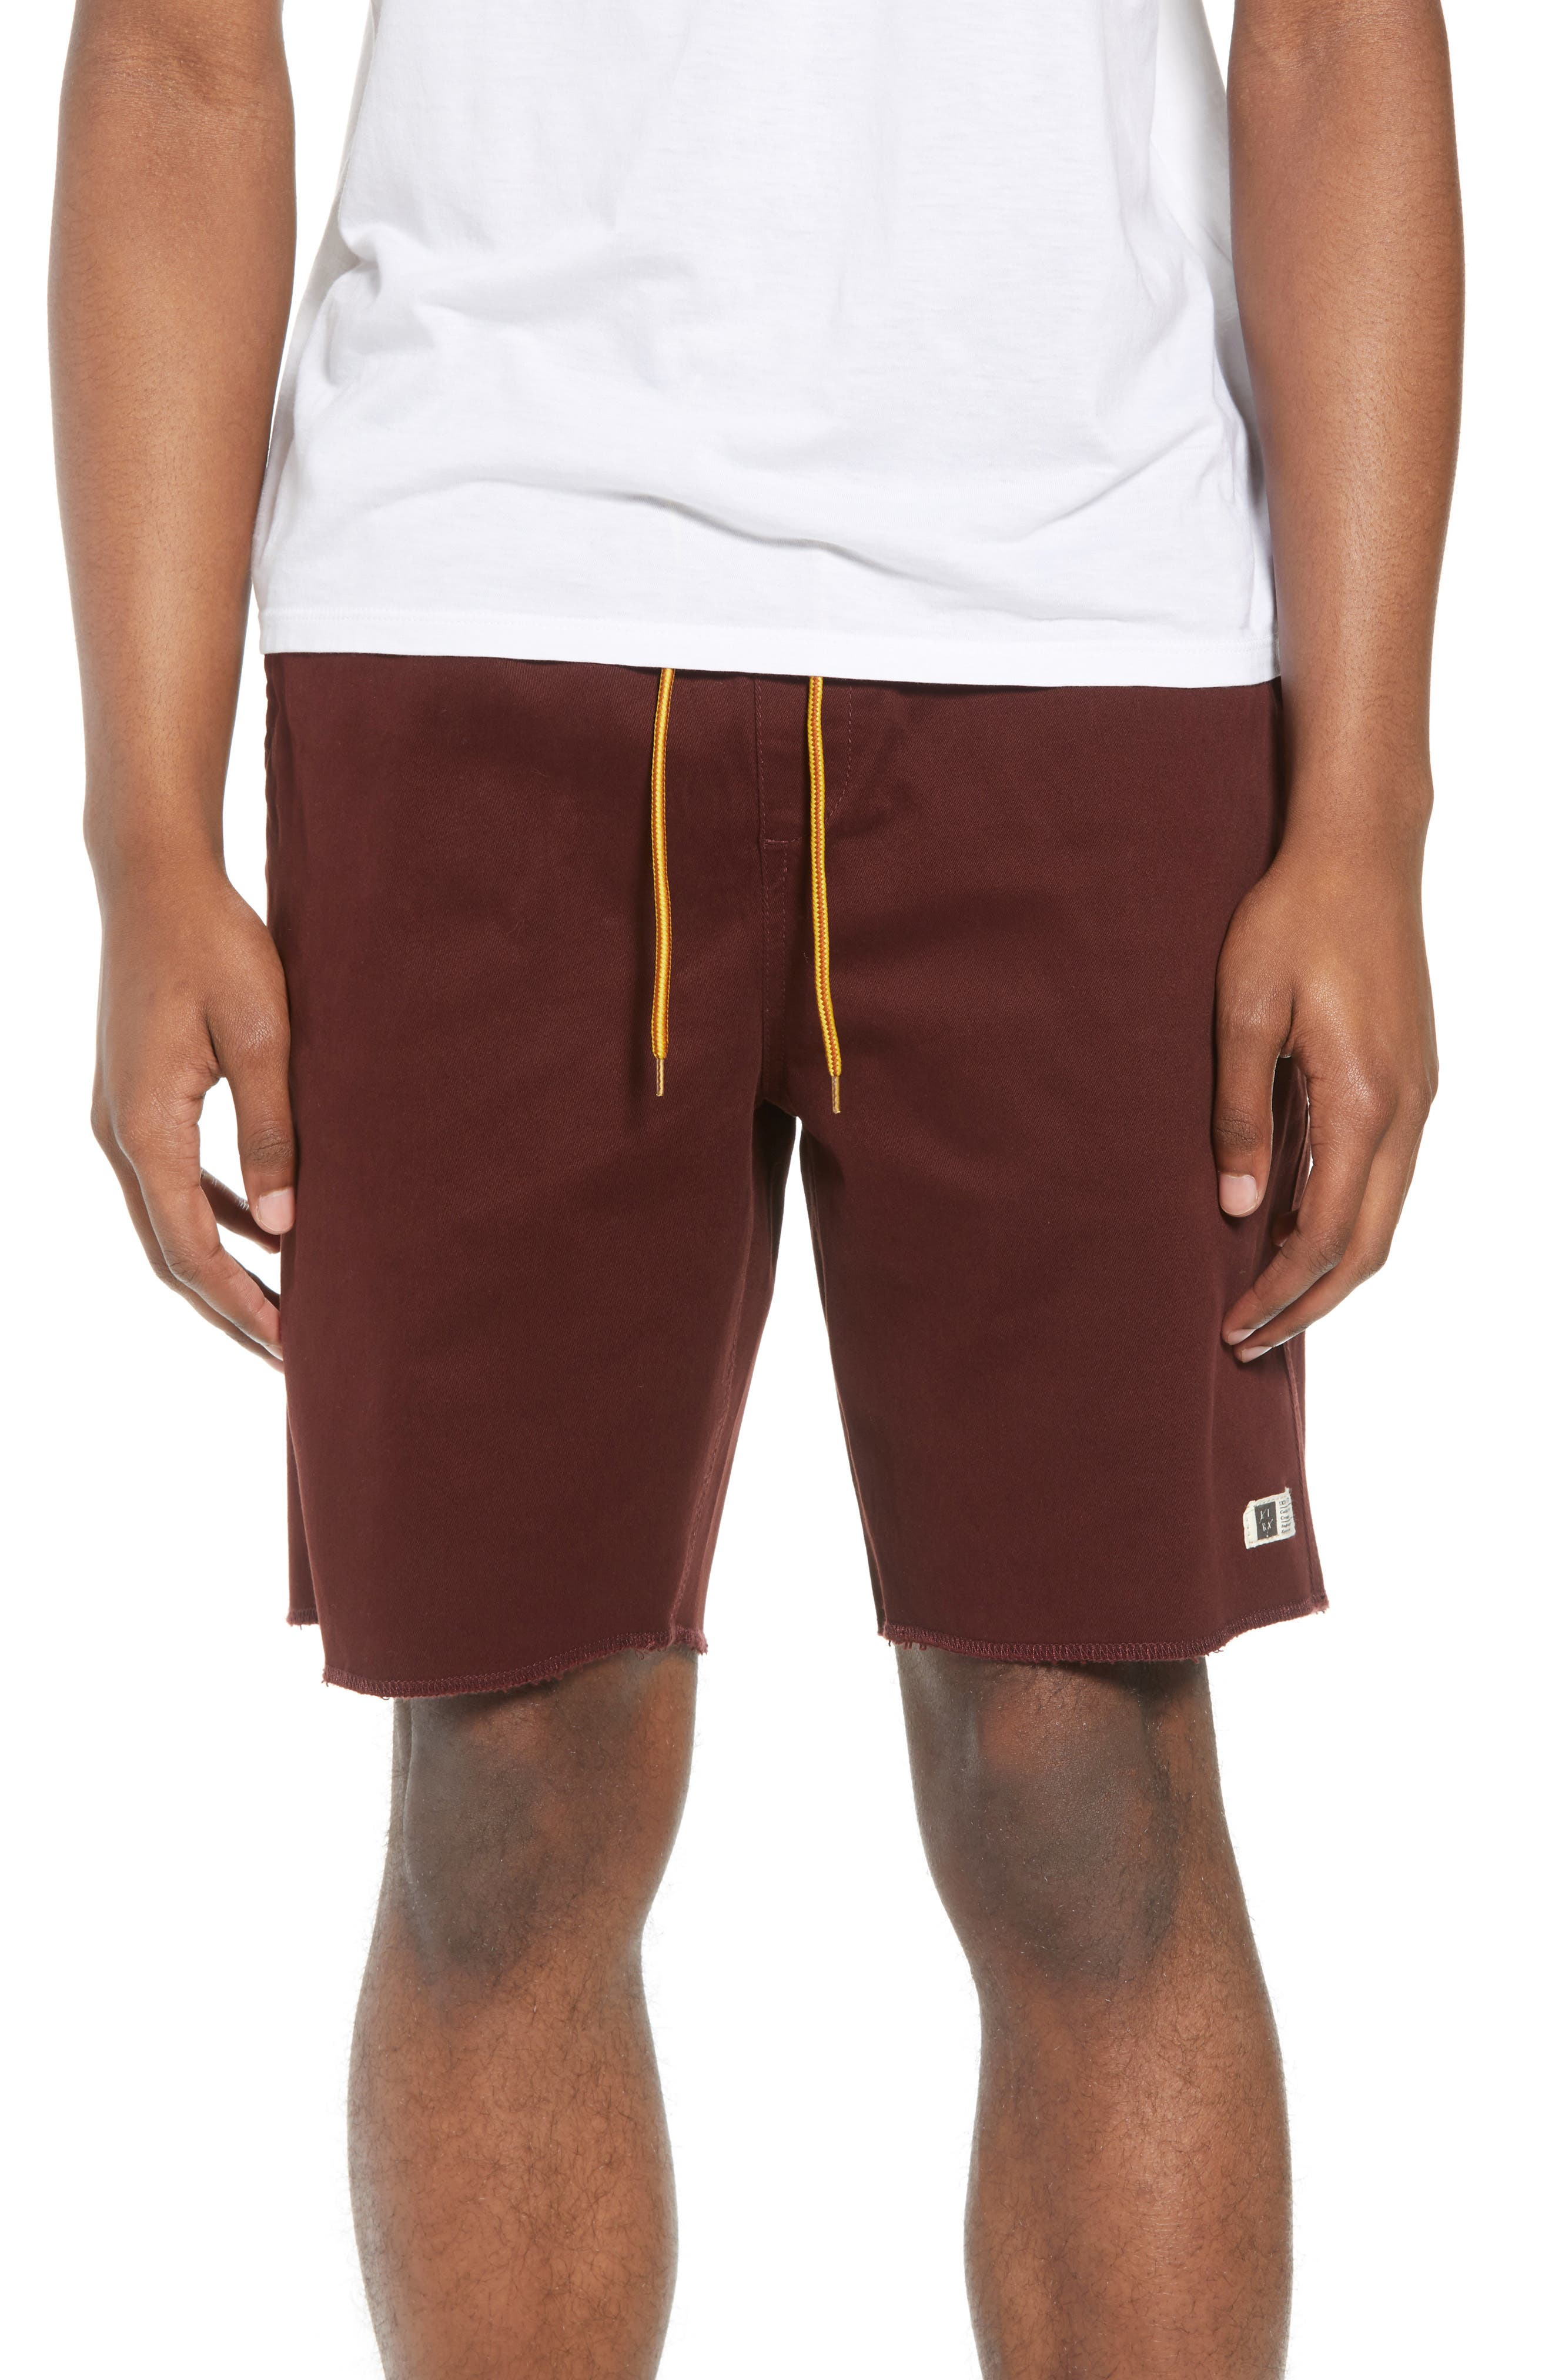 Weekday Shorts,                             Main thumbnail 1, color,                             Burgundy